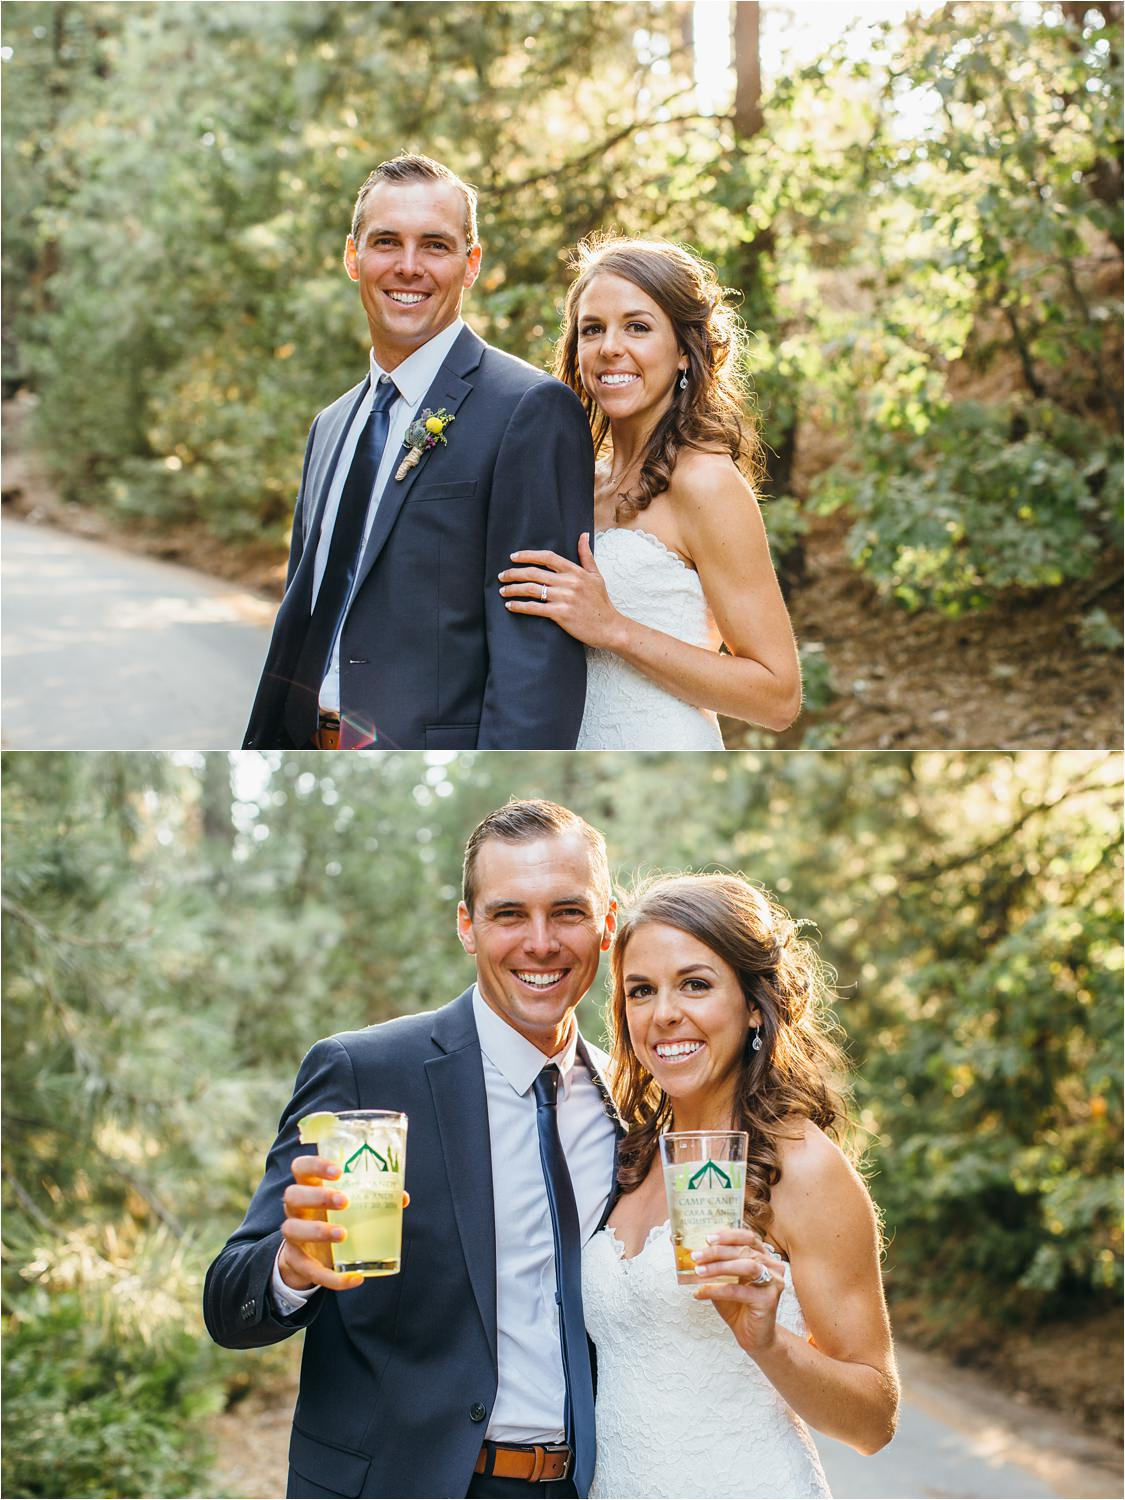 Summer Camp Wedding - Summer Camp Themed Wedding in the Mountains of Lake Arrowhead, CA - https://brittneyhannonphotography.com